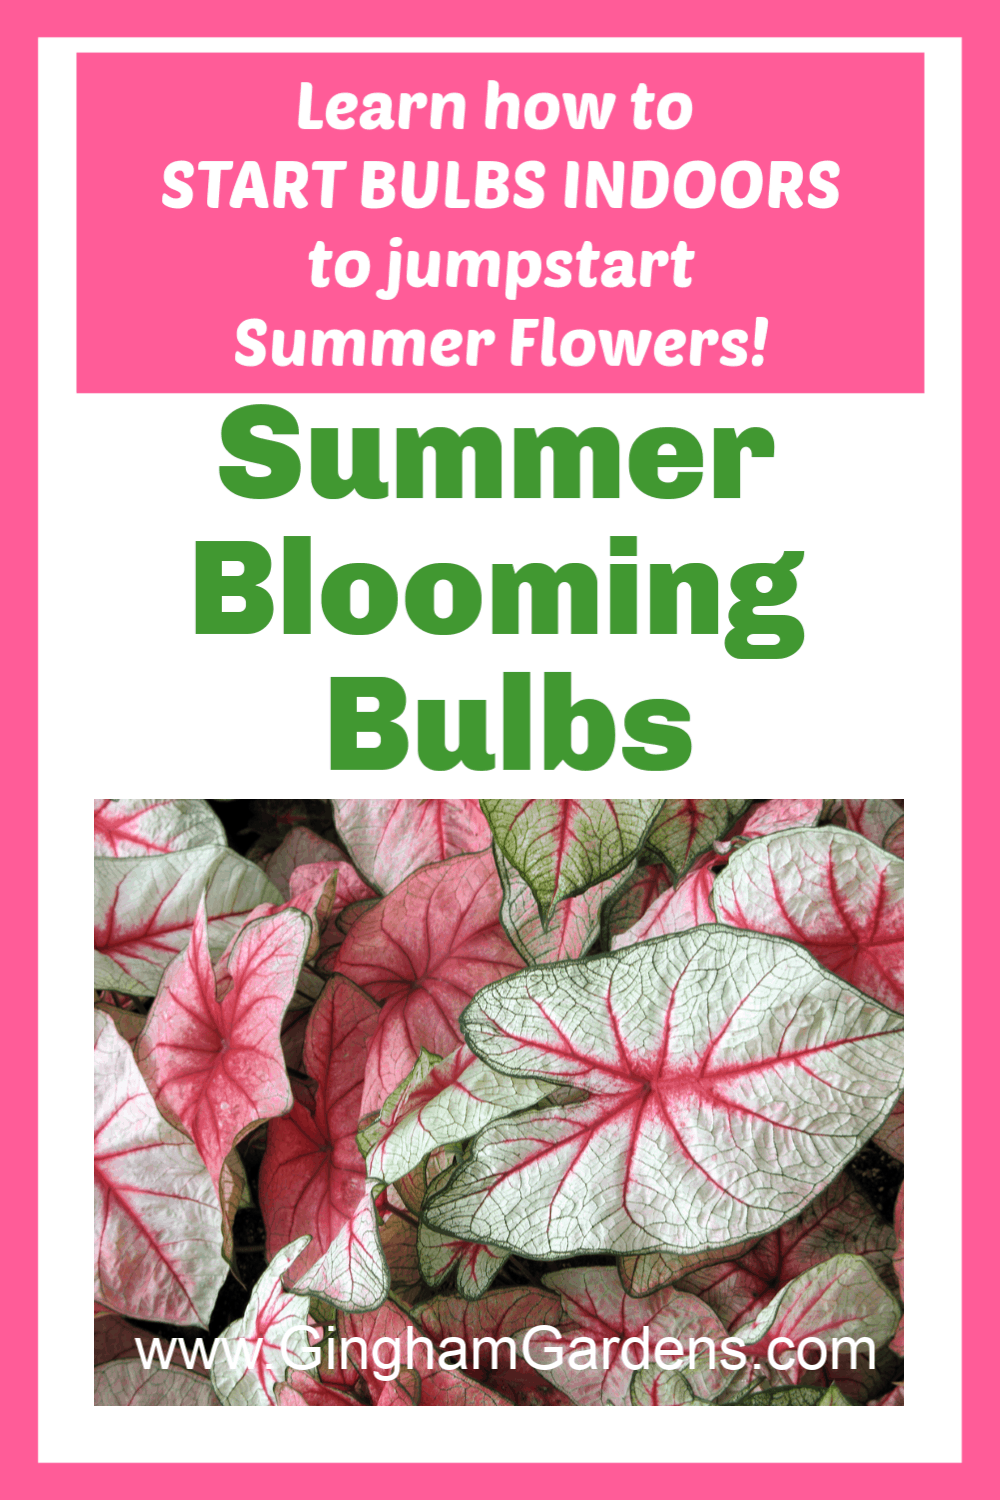 Image of Caladium Plants with Text Overlay - Summer Blooming Bulbs